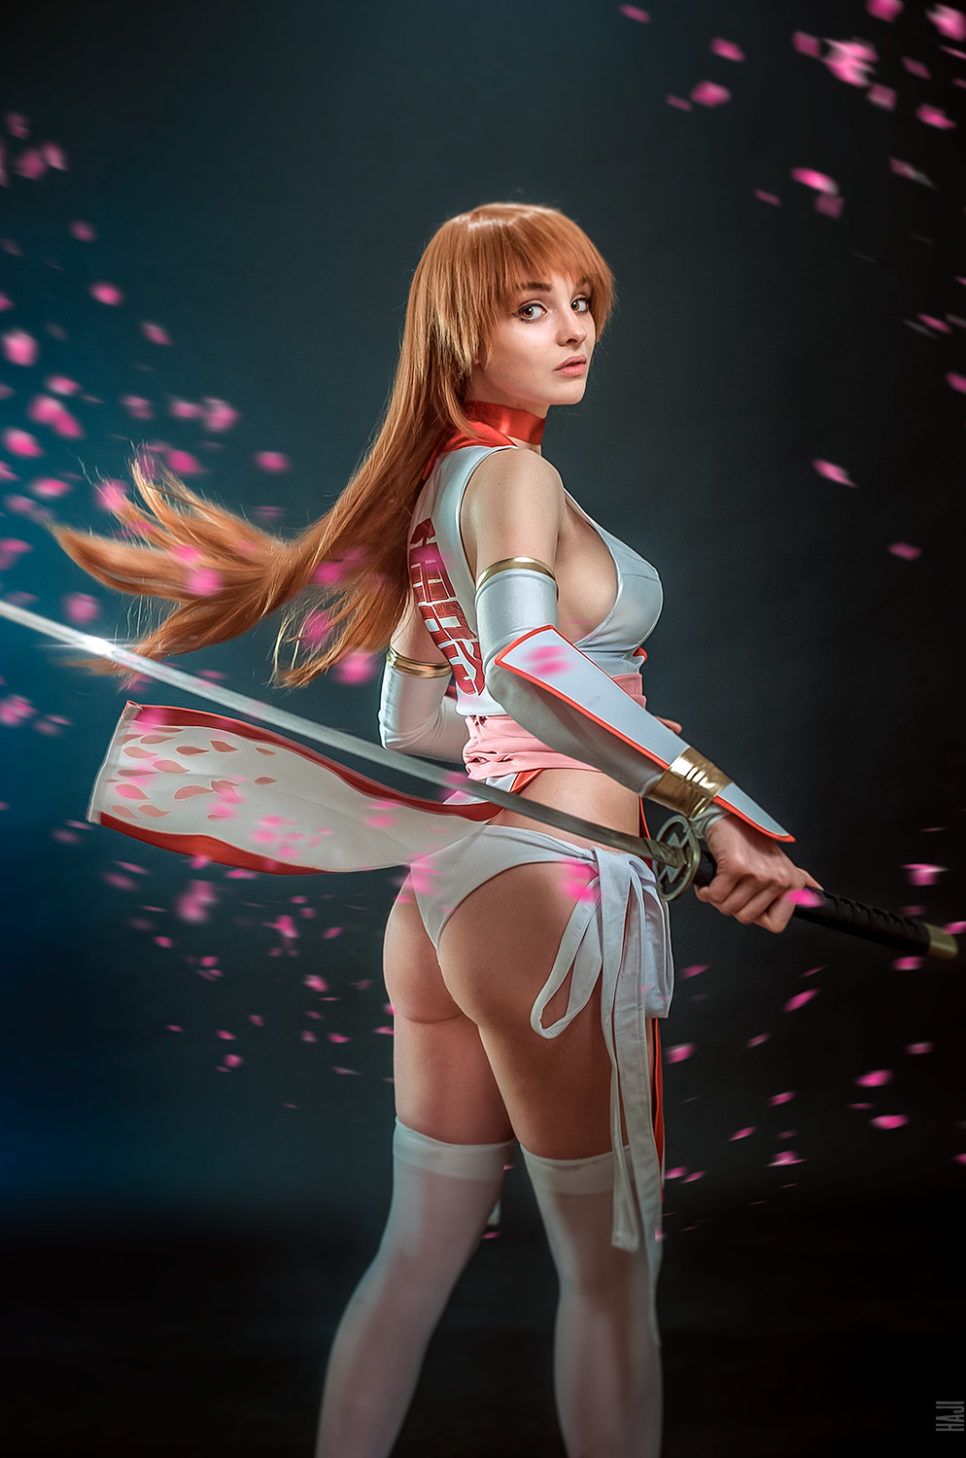 Kasumi z Dead or Alive - czas na cosplay!